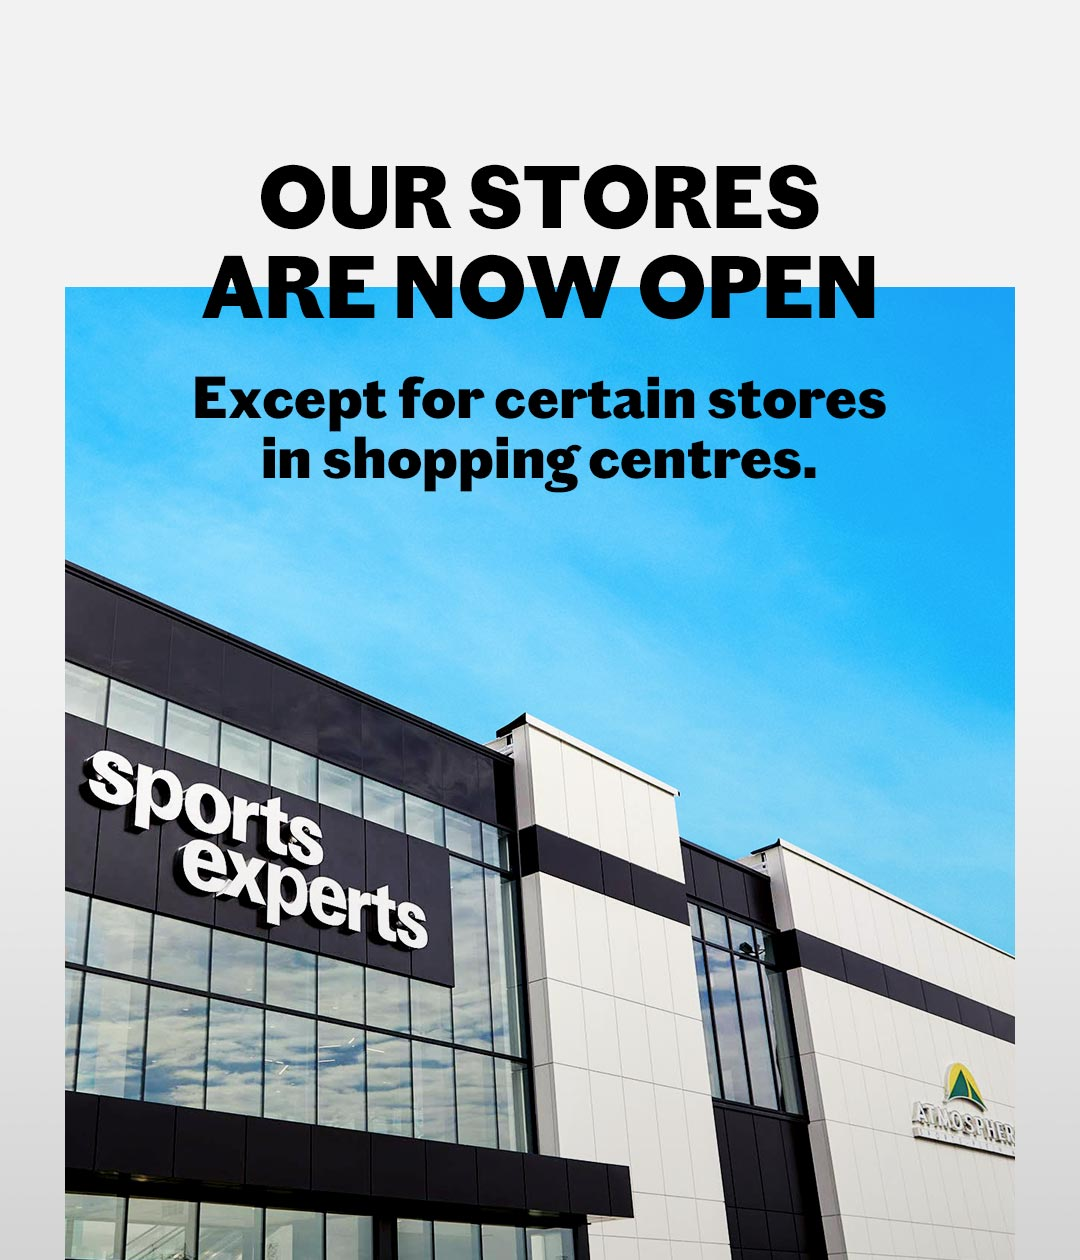 Shopping centre stores opening